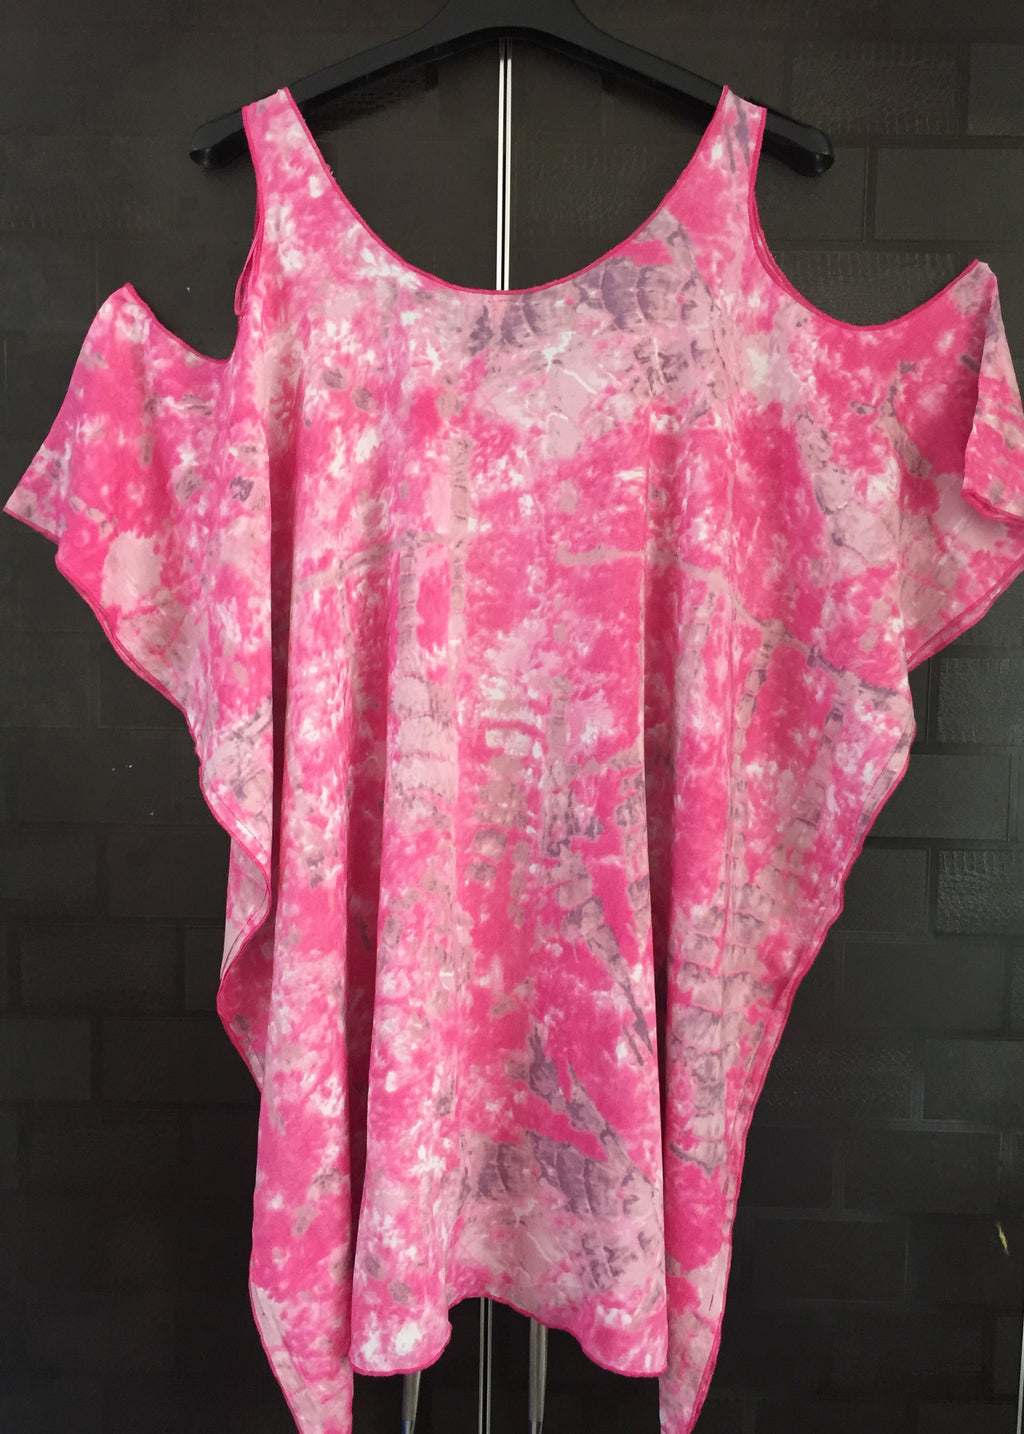 Pink Kaftan Style Top with Cold - Shoulder Cut